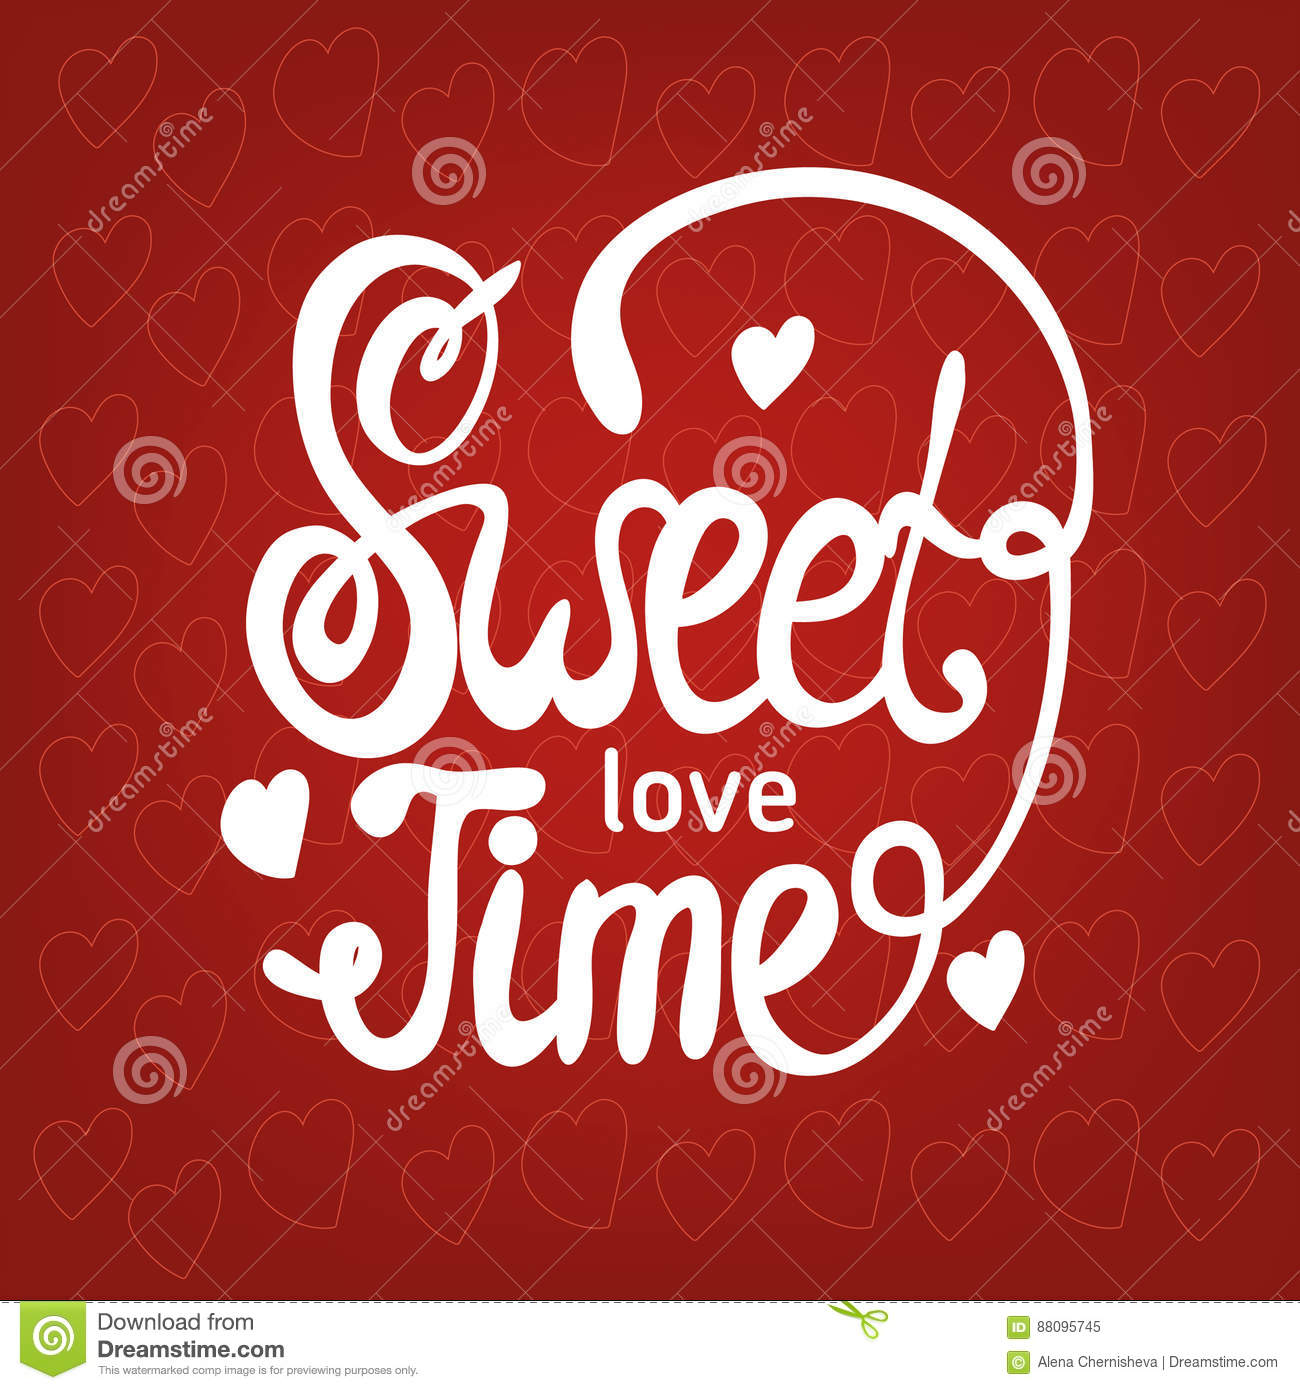 Sweet love time hand drawn brush lettering cartoon